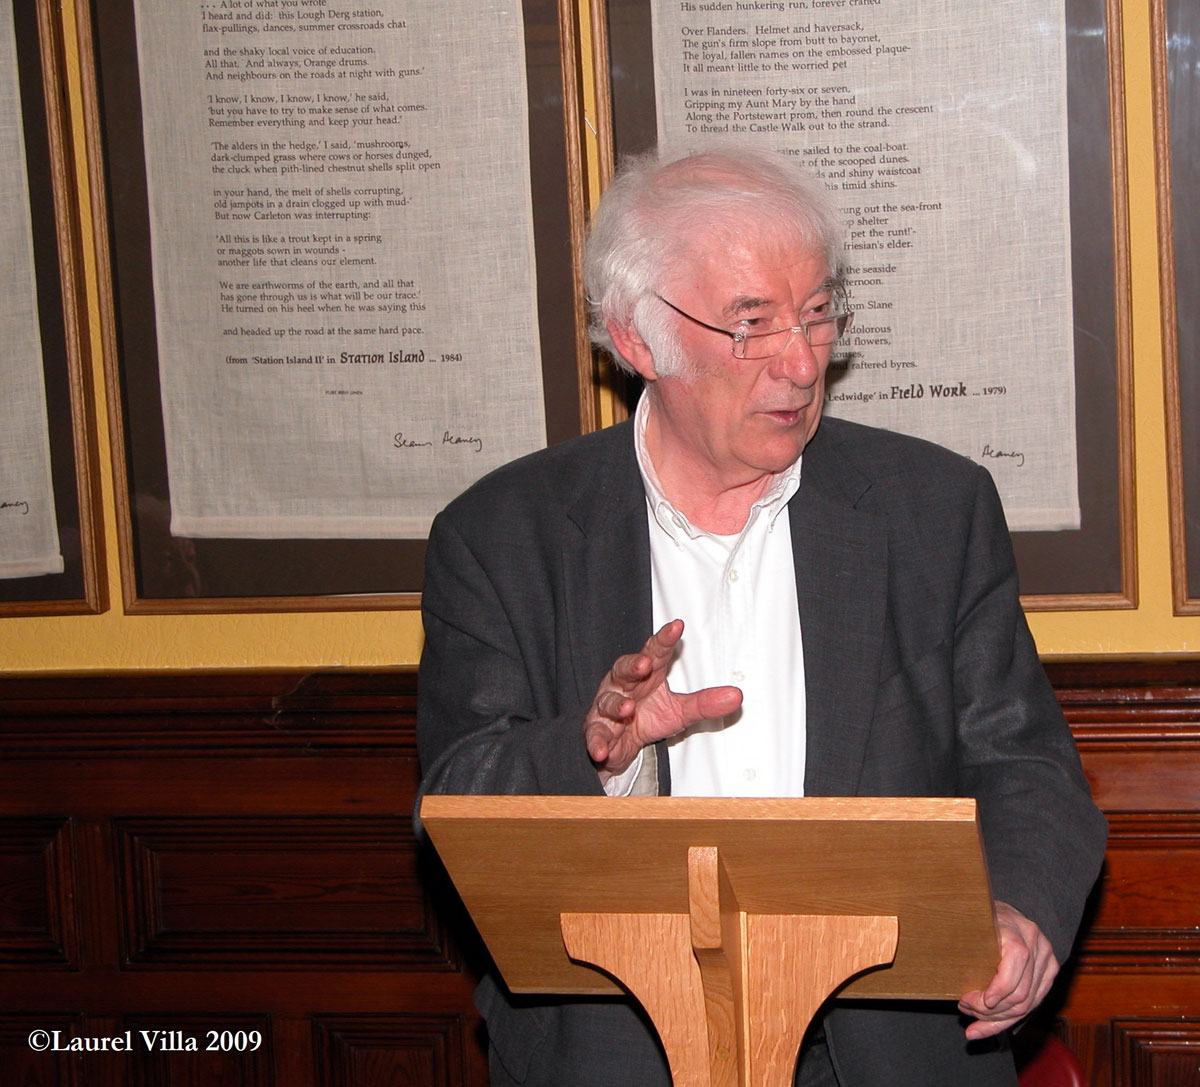 20th Century Irish Poets > Accommodations for students of Seamus Heaney's Poetry > Laurel Villa Guest House in Magherafelt offers bed and breakfast accommodation, along with tours and local information about Seamus Heaney's Poetry